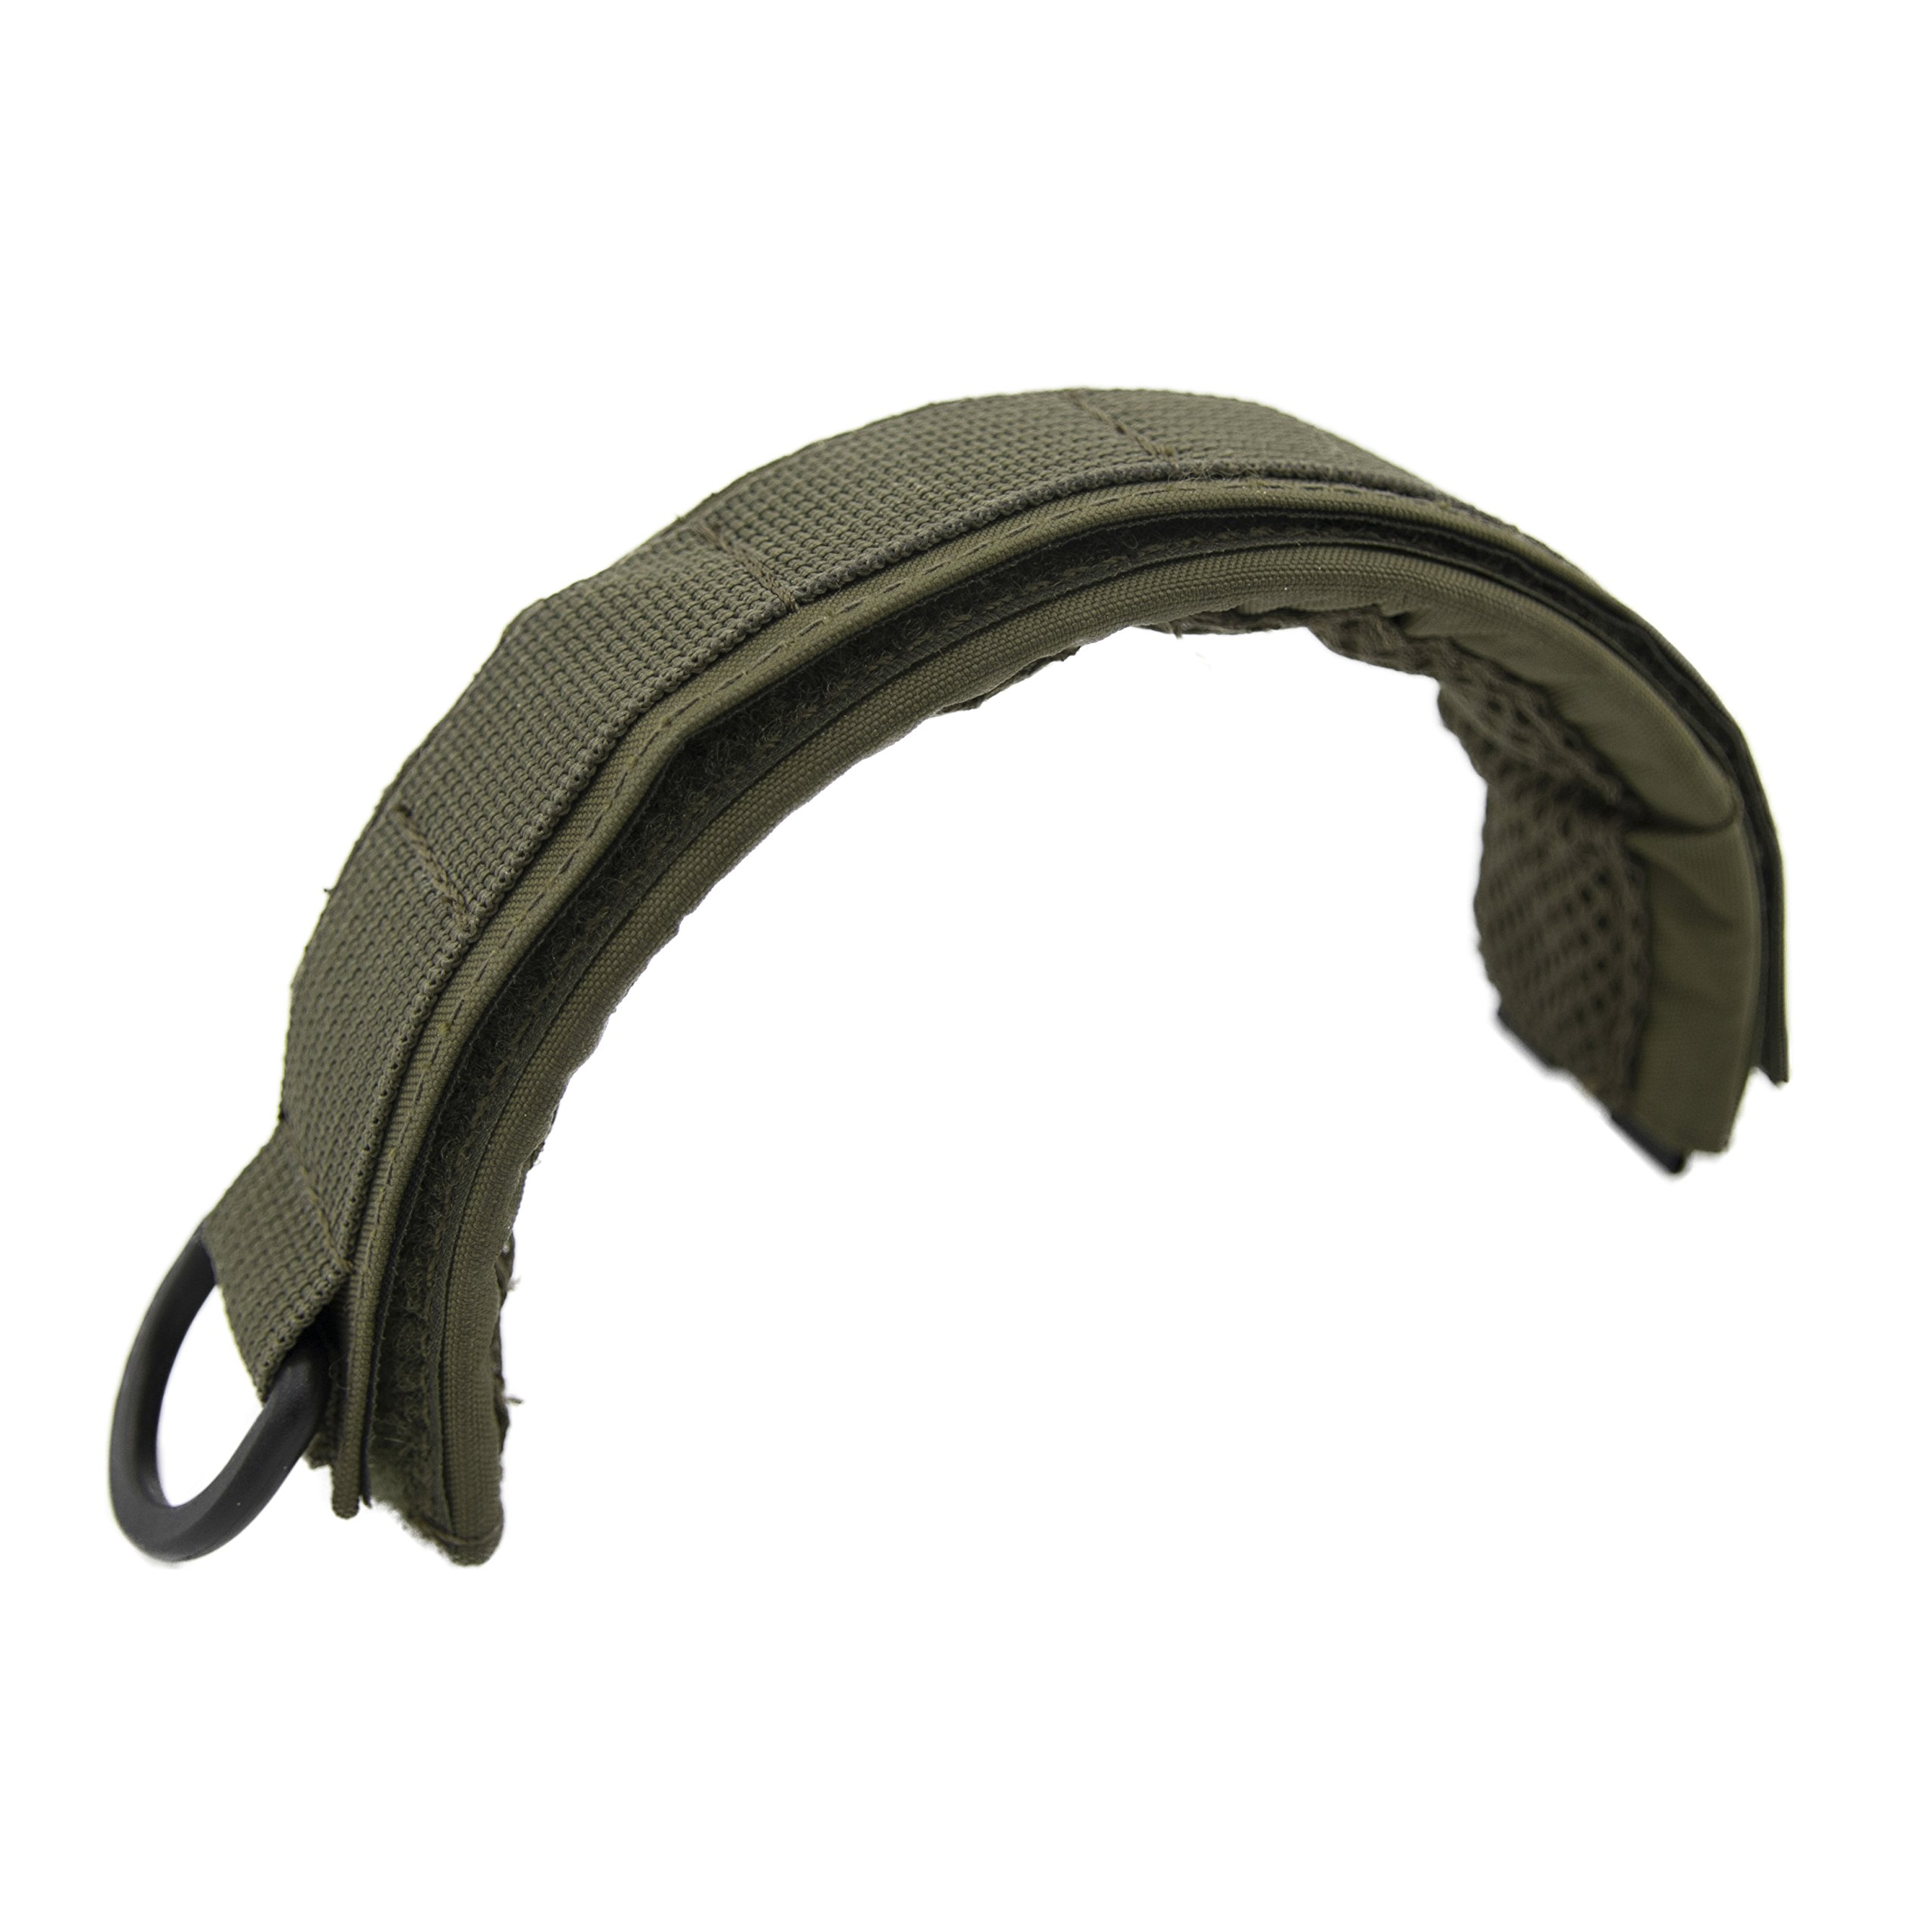 OPSMEN Headband Advanced Modular Headset Cover Fit For All General Tactical Earmuffs Accessories Upgrade Bags Case Green(FG) by OPSMEN